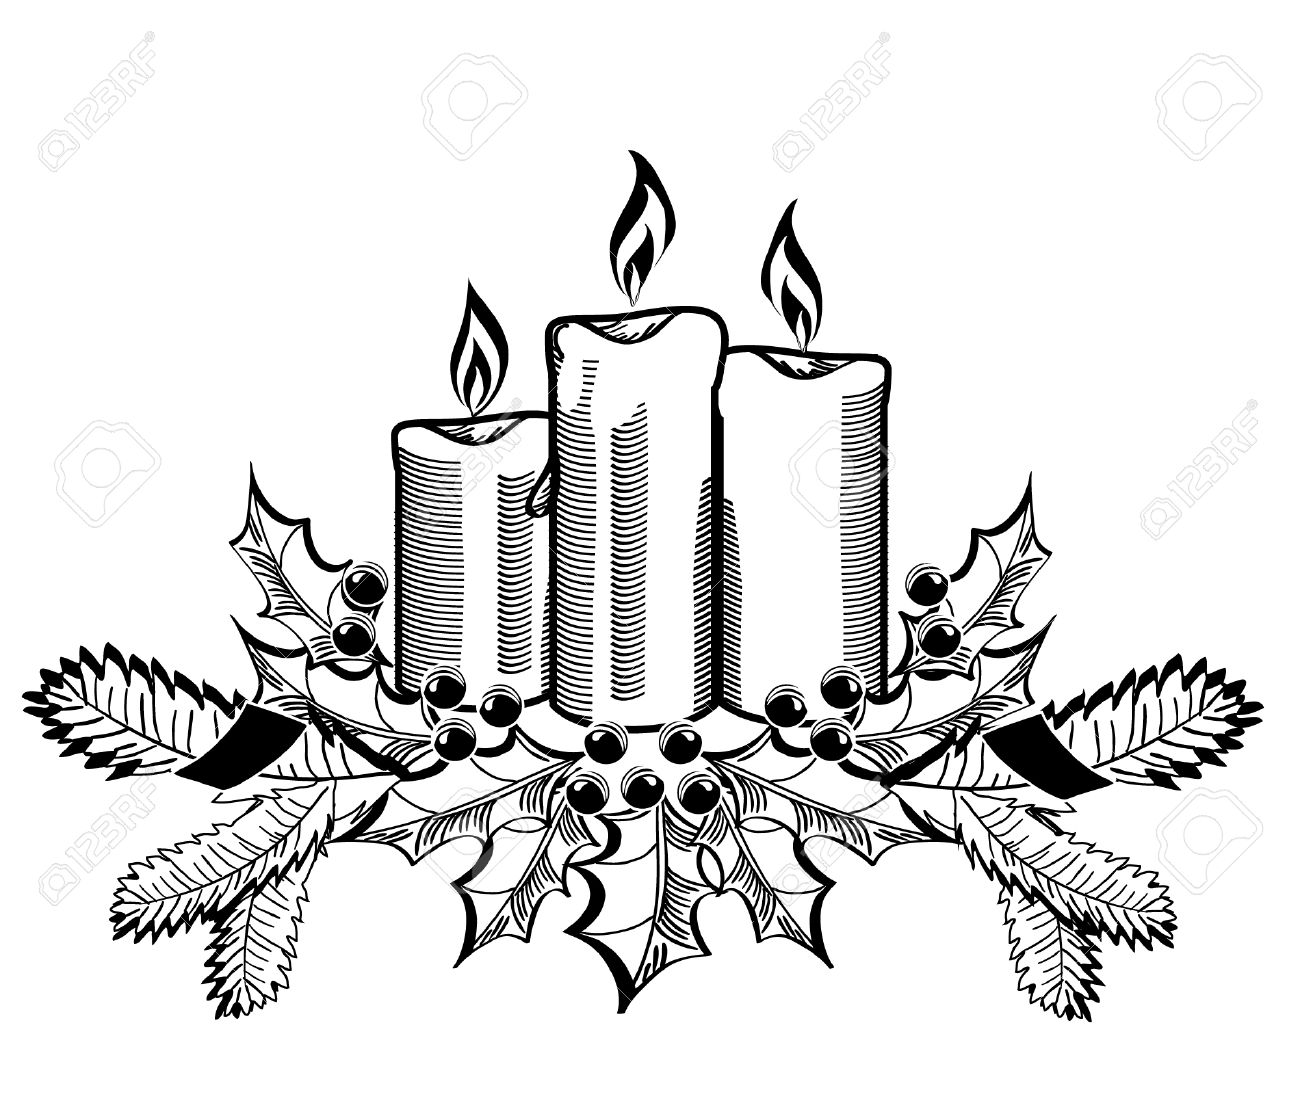 Christmas Candles And Holly Sprigs On White. Royalty Free Cliparts ... for Candle Clip Art Black And White  45ifm